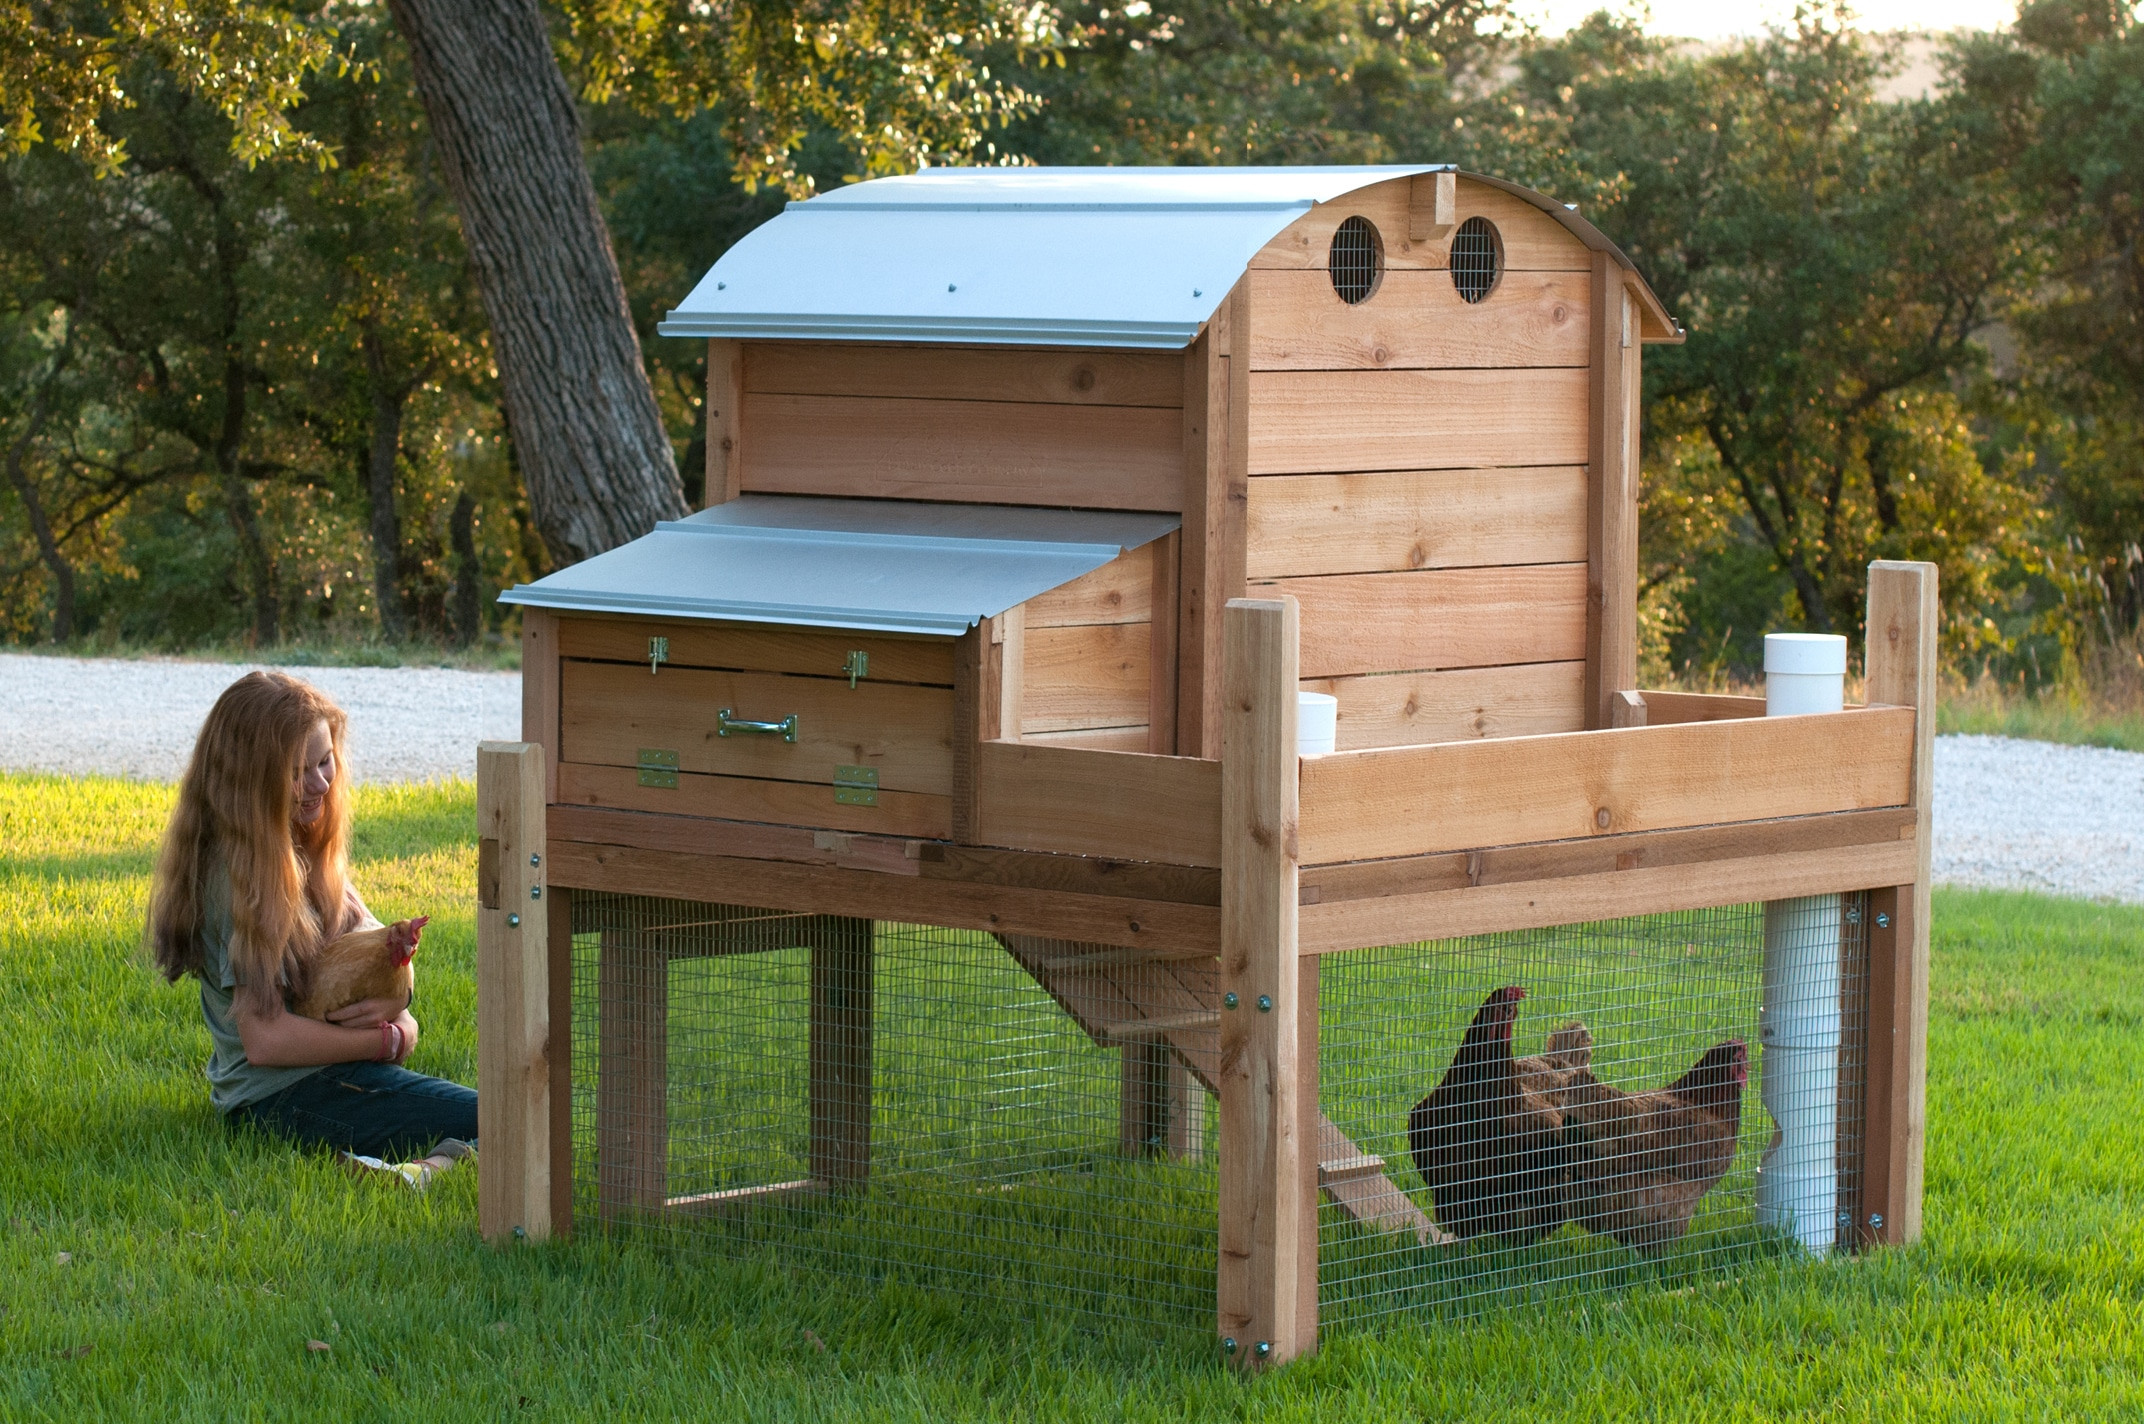 Best ideas about Backyard Chicken Coop . Save or Pin Round Top Backyard Chicken Coop™ Now.